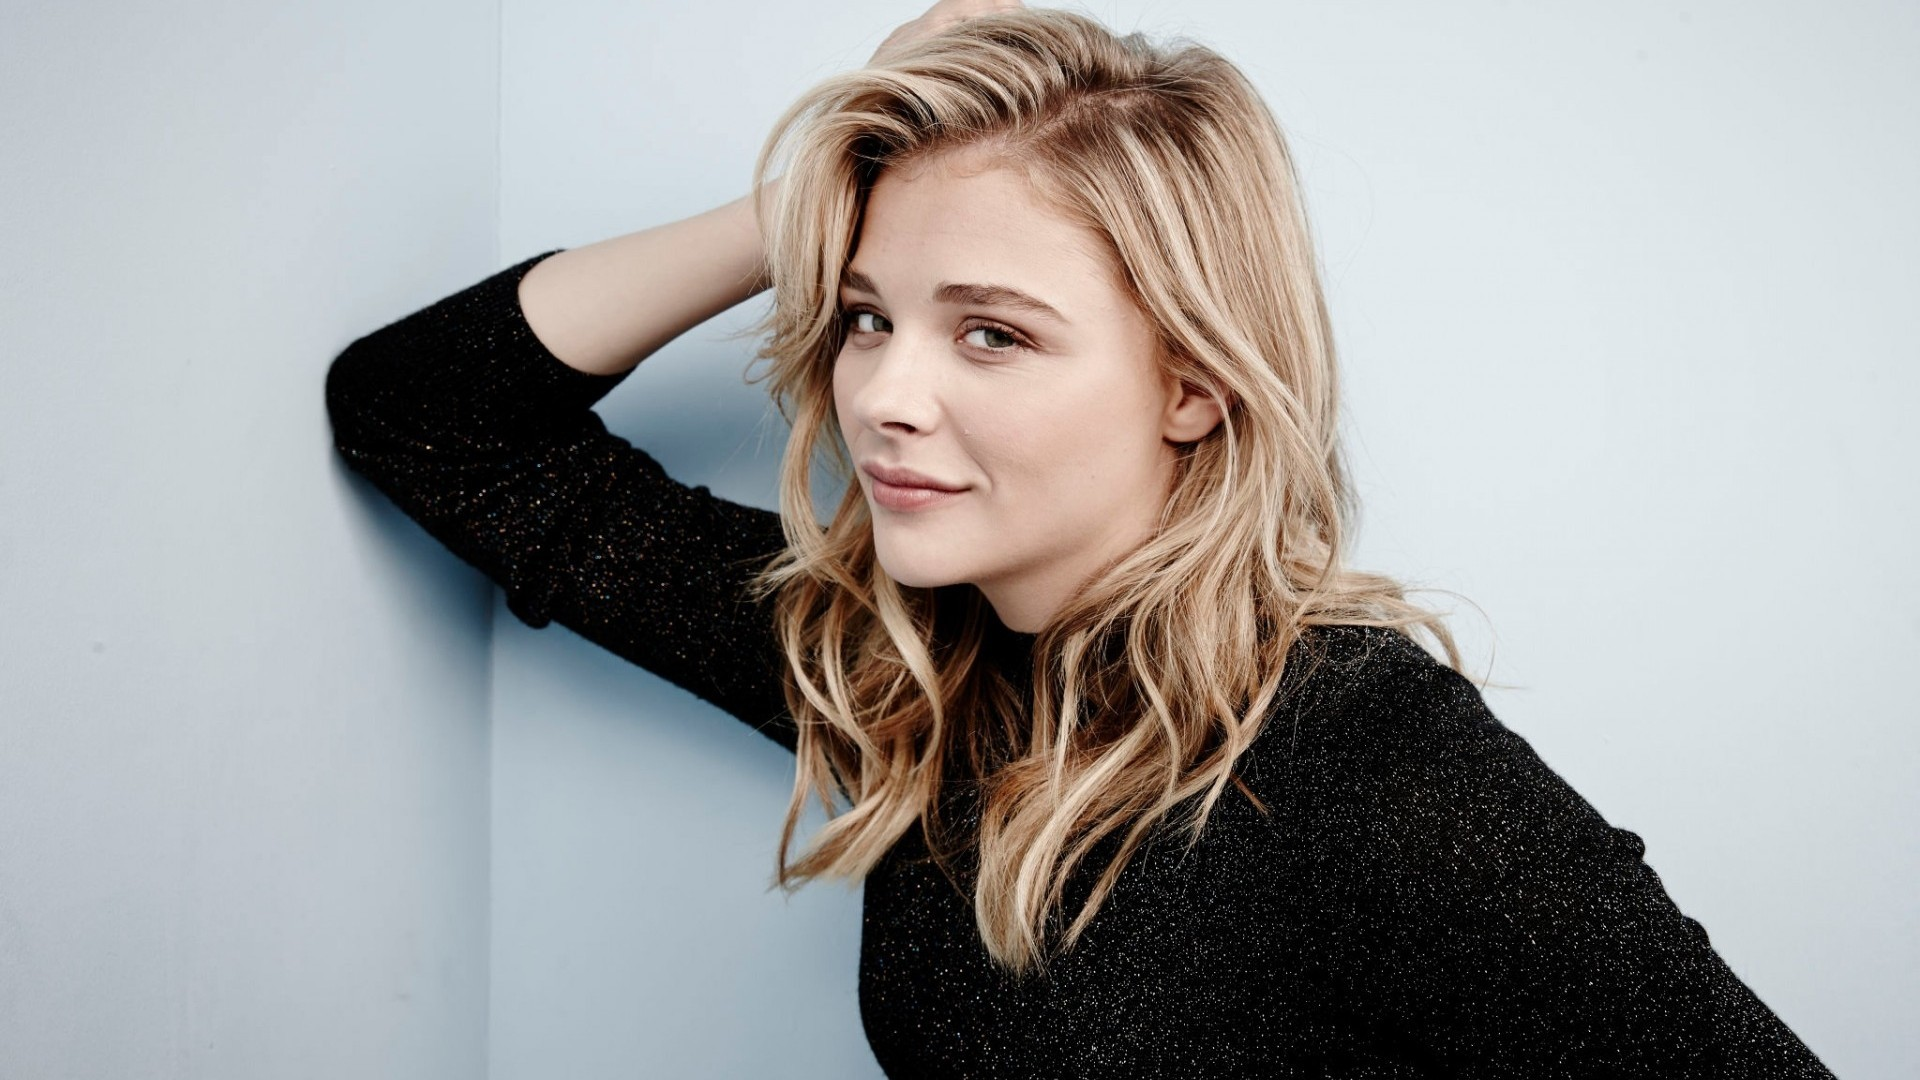 Chloe Moretz Sexy Wallpapers